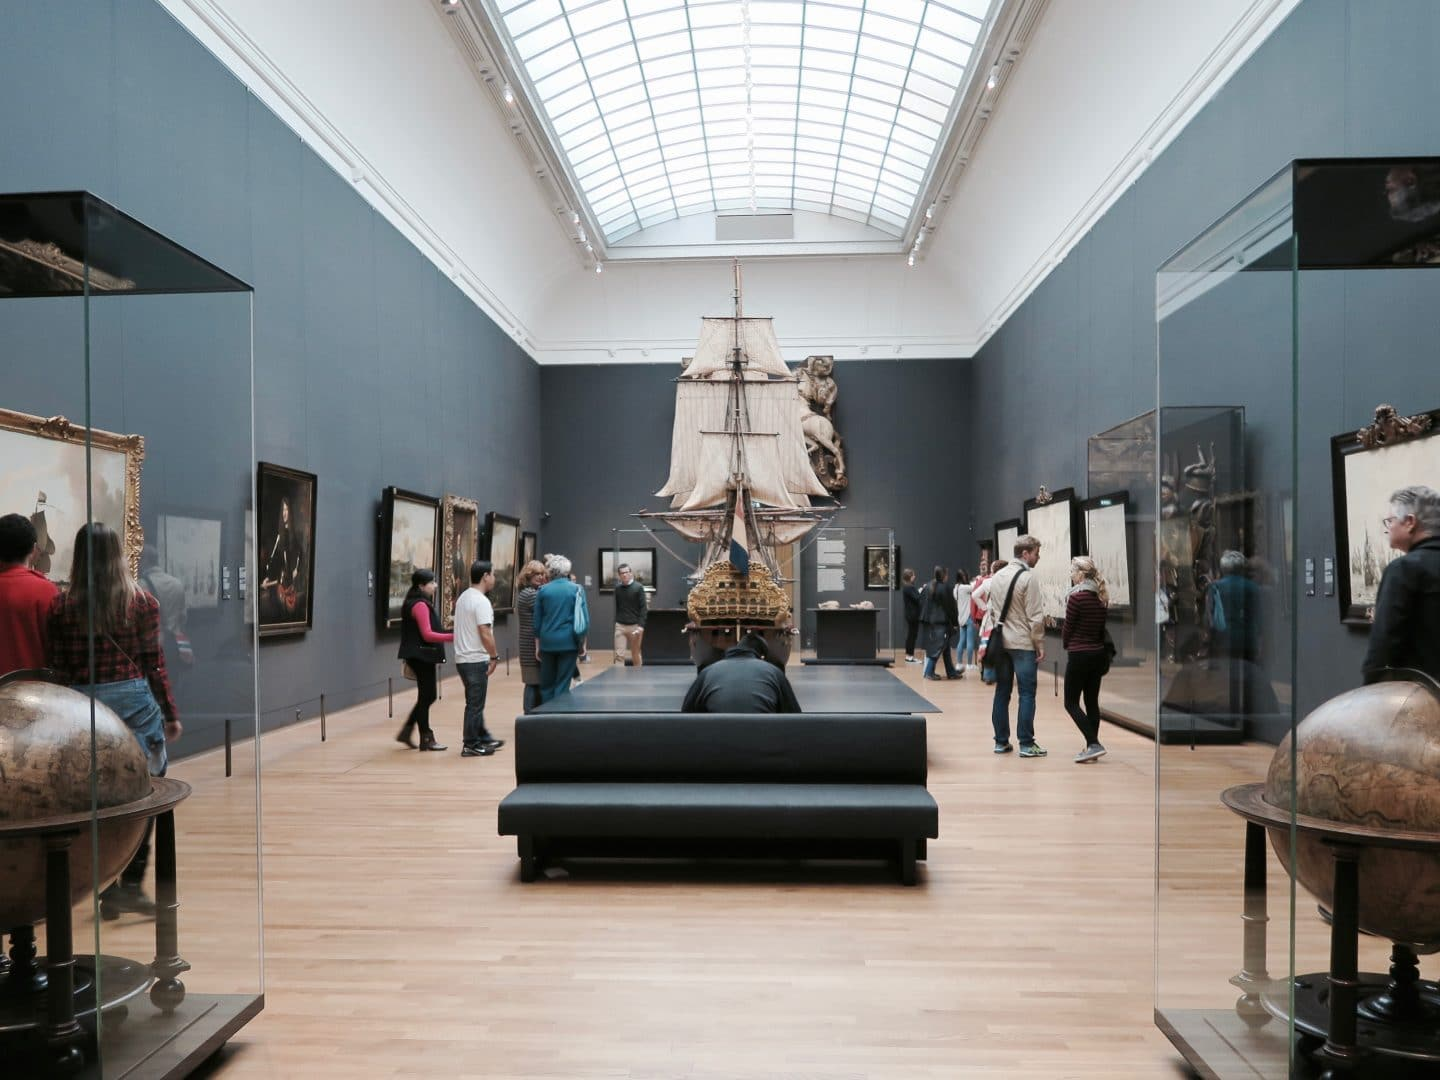 Naval Art at Rijksmuseum